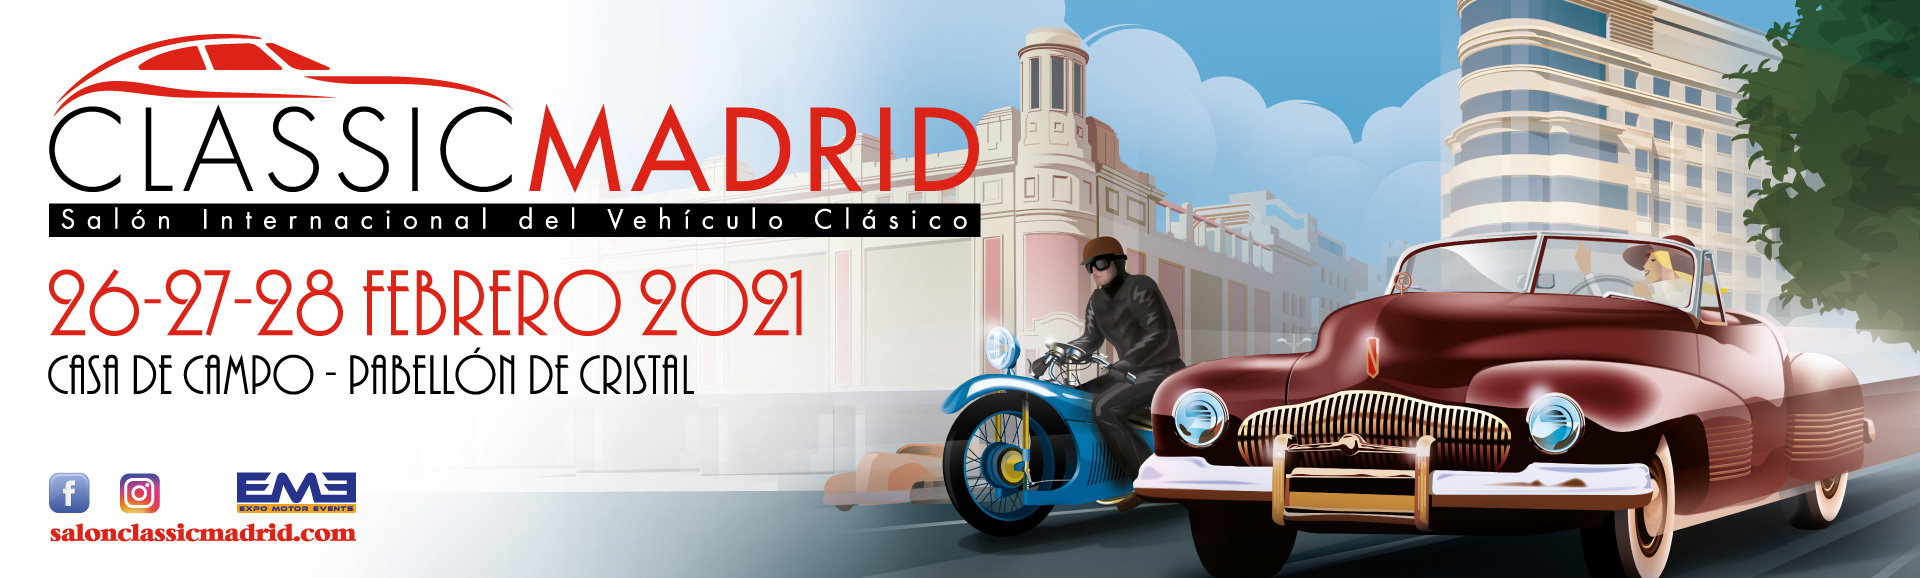 cartel classicauto, coches clasicos madrid, antiguo retromovil